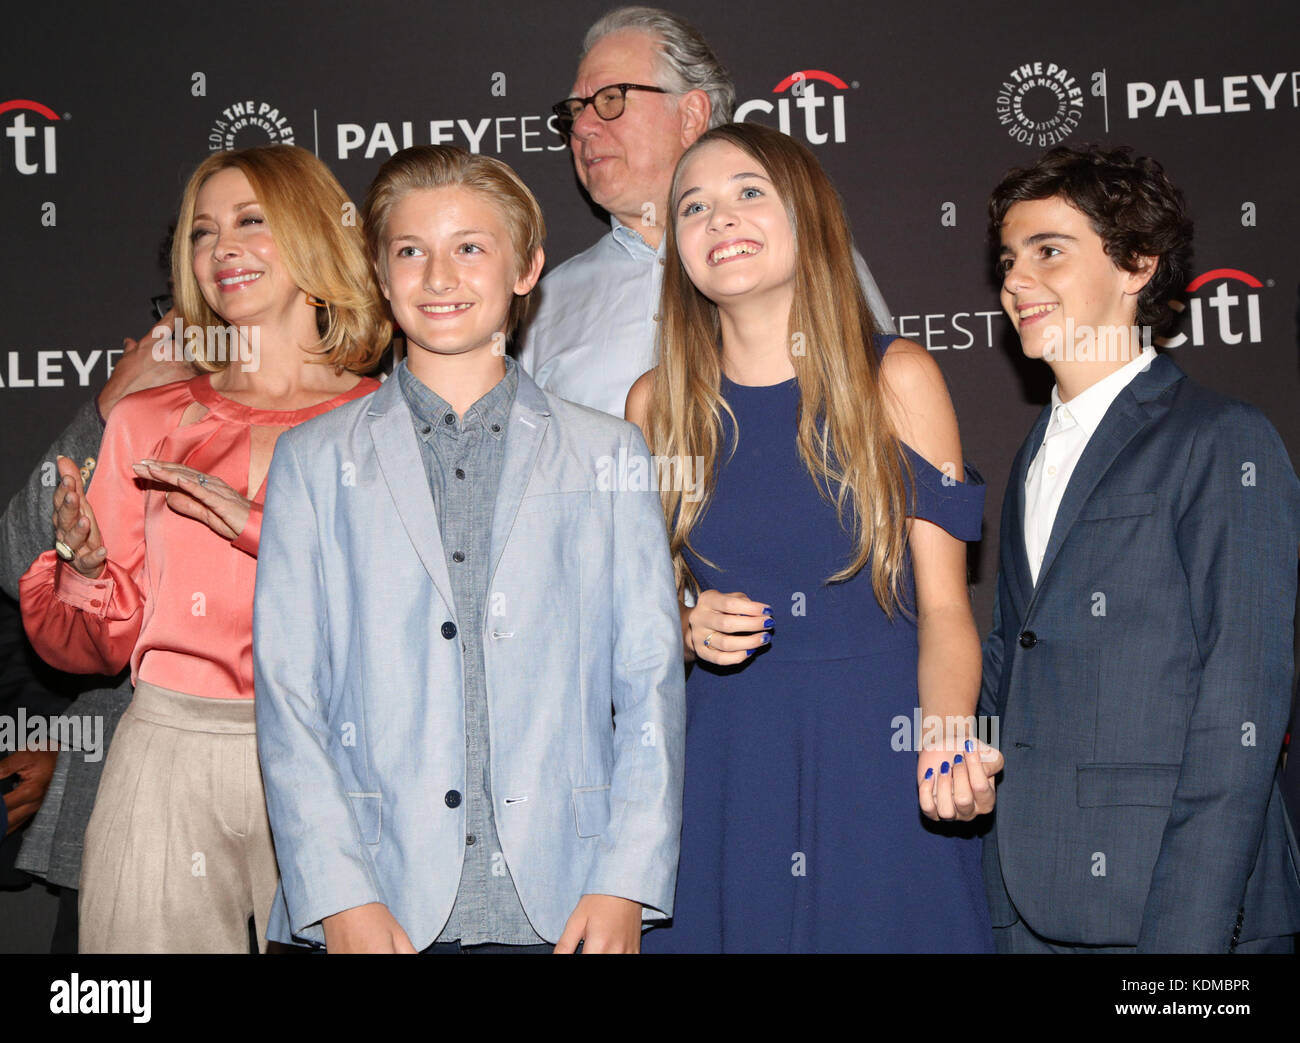 Celebrities Attend Paleyfest Fall Me Myself I Arrivals At The